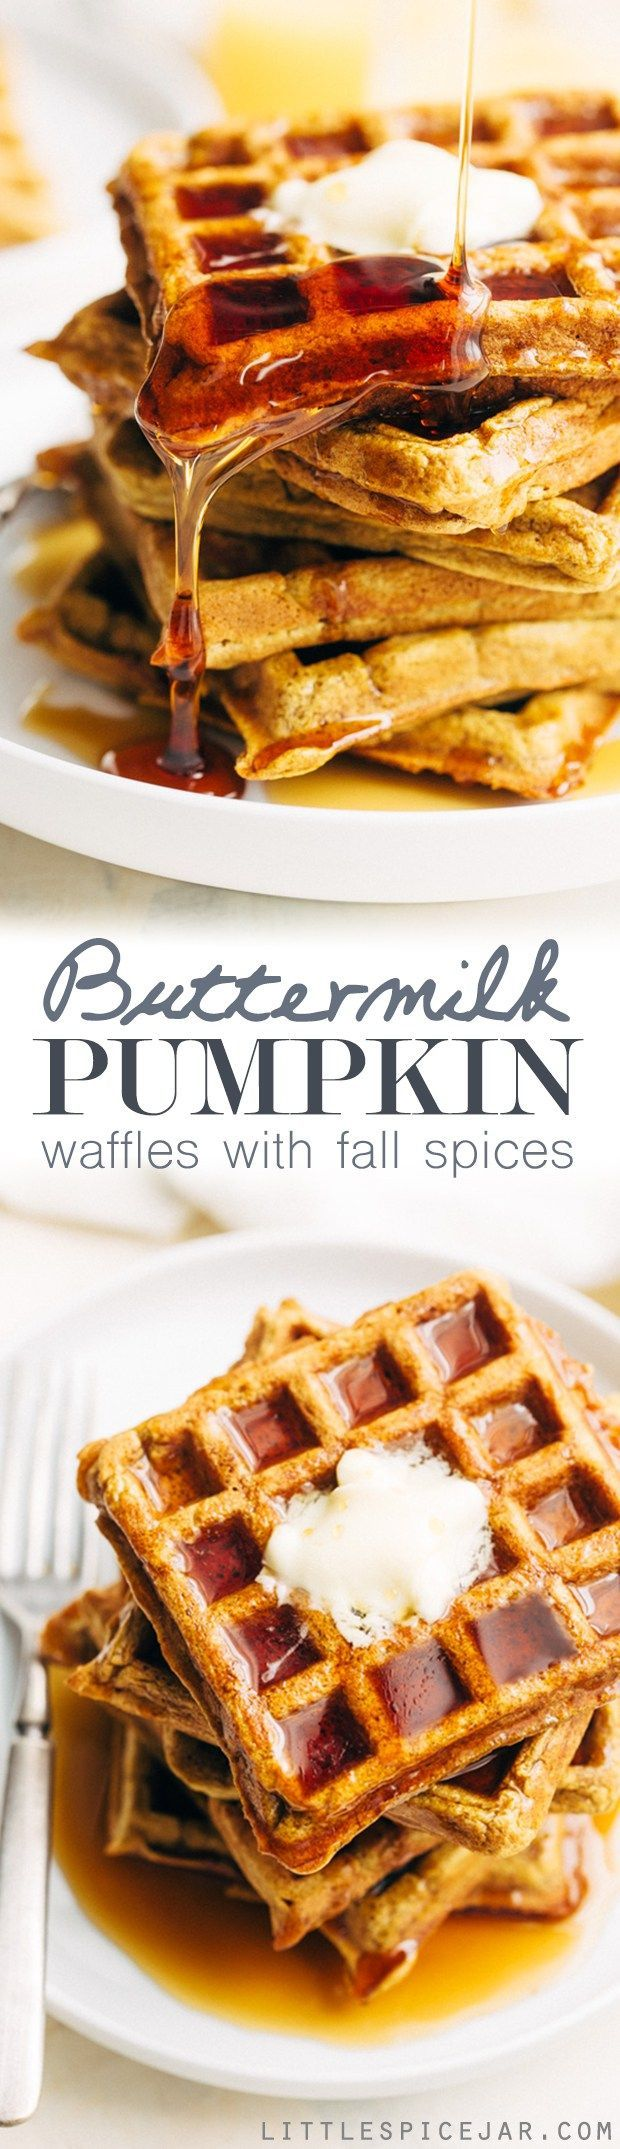 Buttermilk Pumpkin Waffles - The more tender and fluffy waffles that are spiced with fall flavors! Drizzled with maple syrup, they're perfect for fall breakfast! #waffles #pumpkinwaffles #buttermilkwaffles | http://Littlespicejar.com